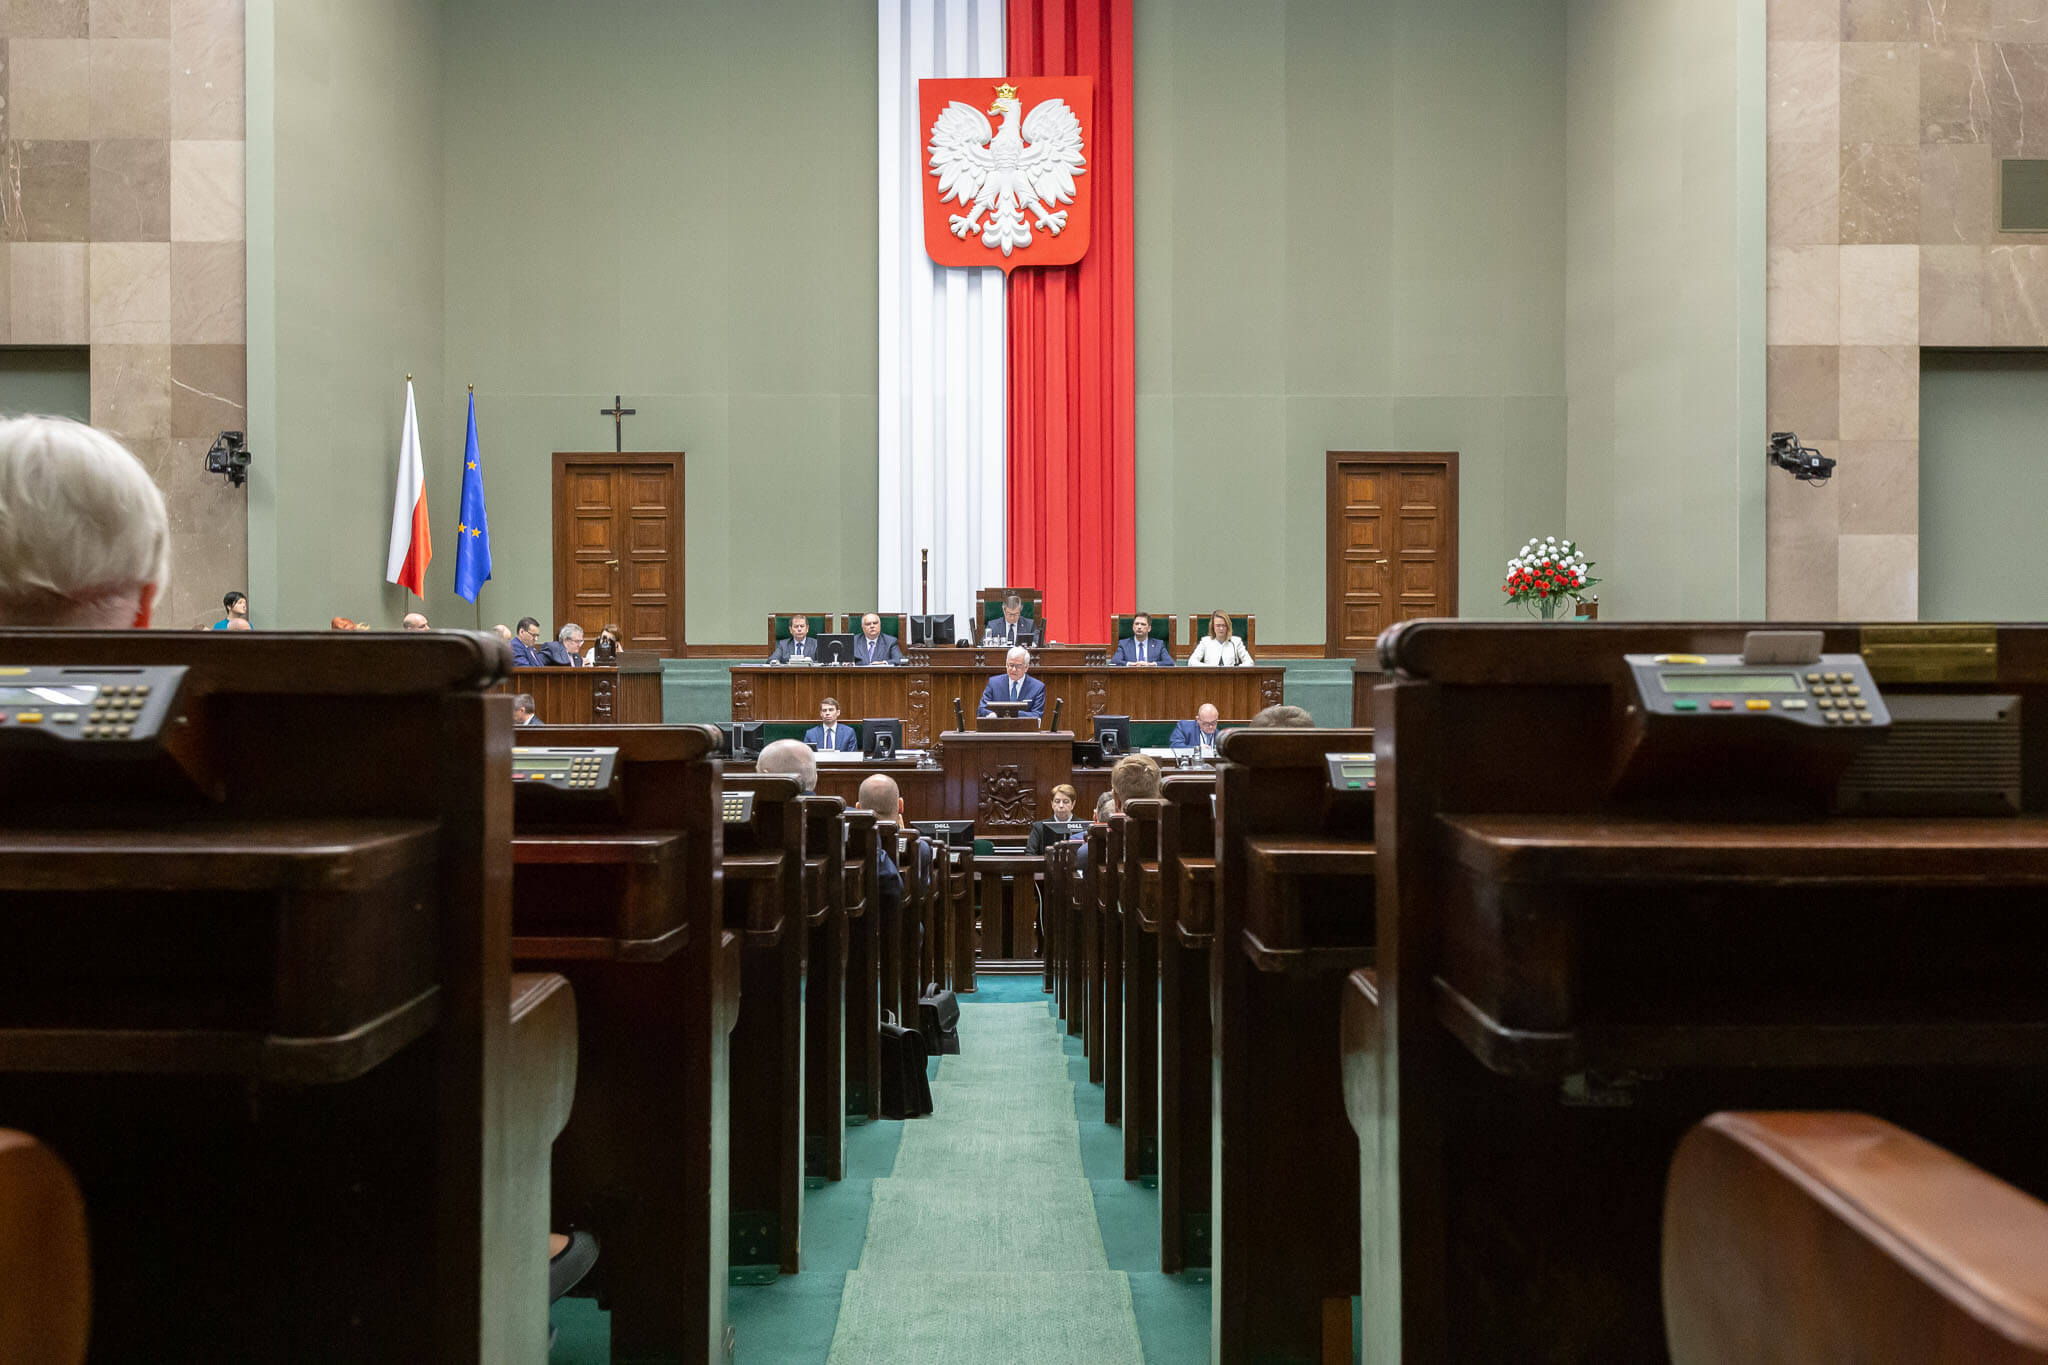 Het Poolse lagerhuis, de Sejm, 2019. © Ministry of Foreign Affairs of the Republic of Poland - Flickr